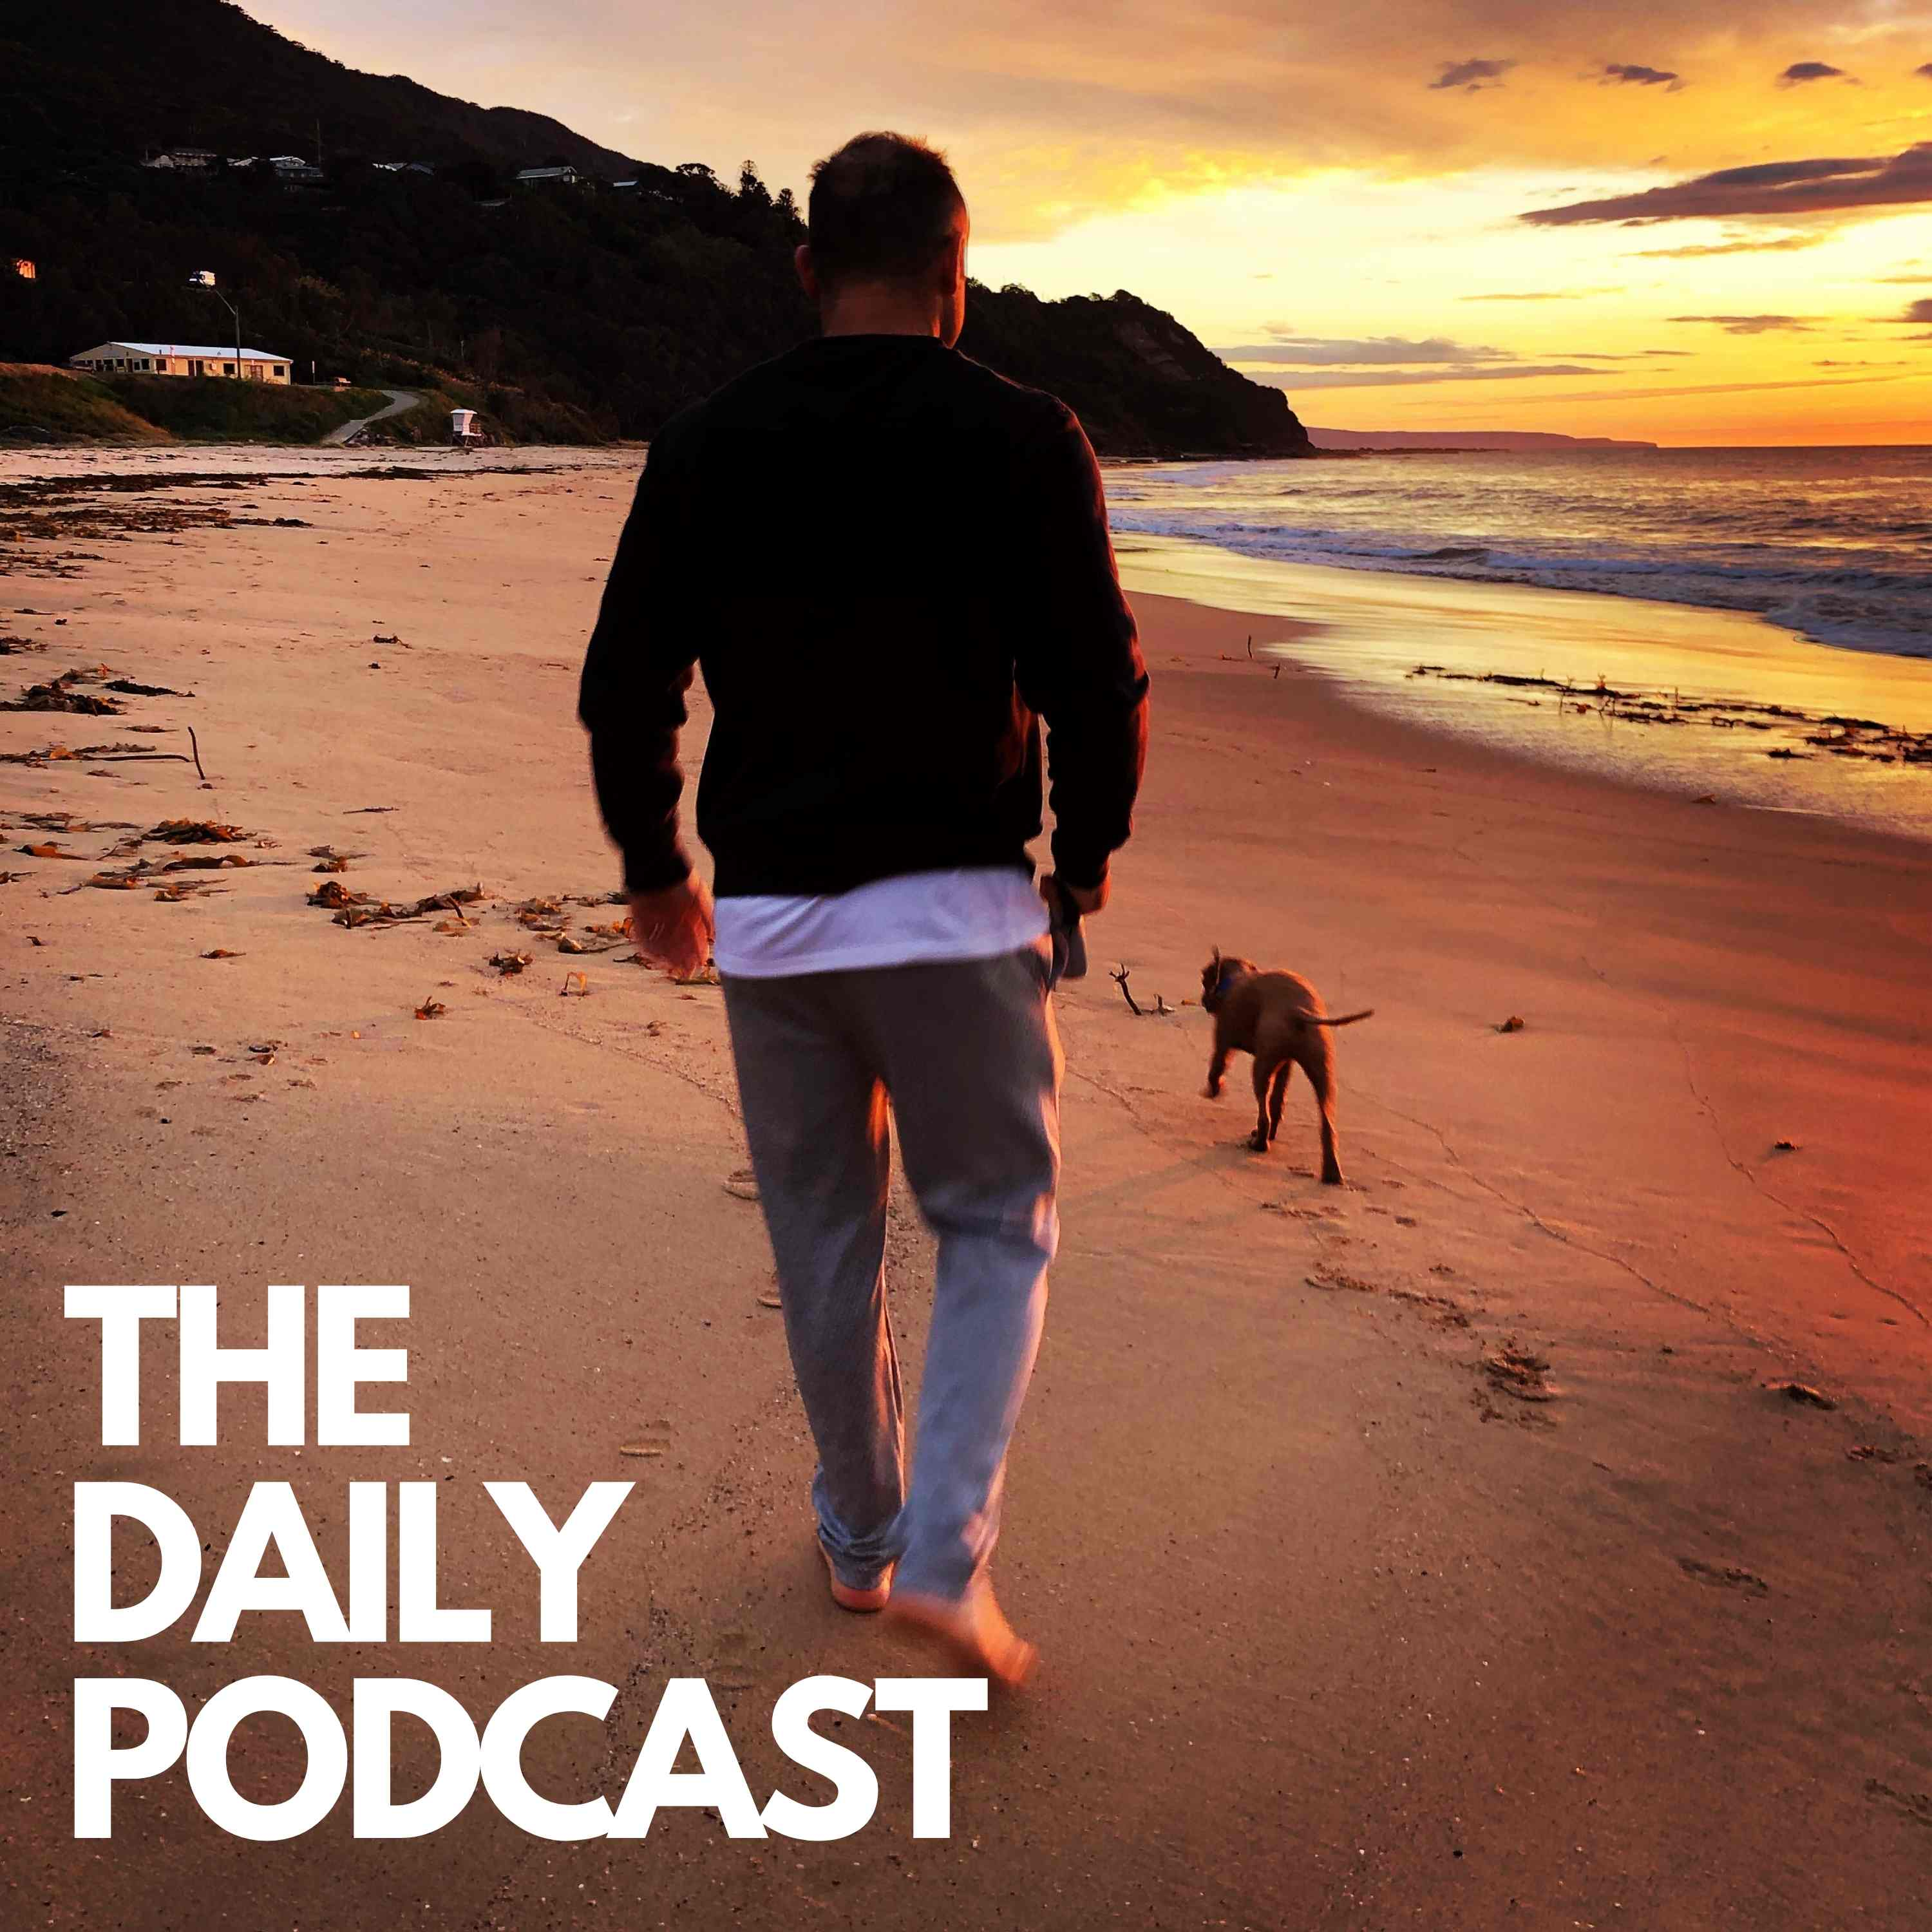 The Daily Podcast with Jonathan Doyle Podcast - Listen